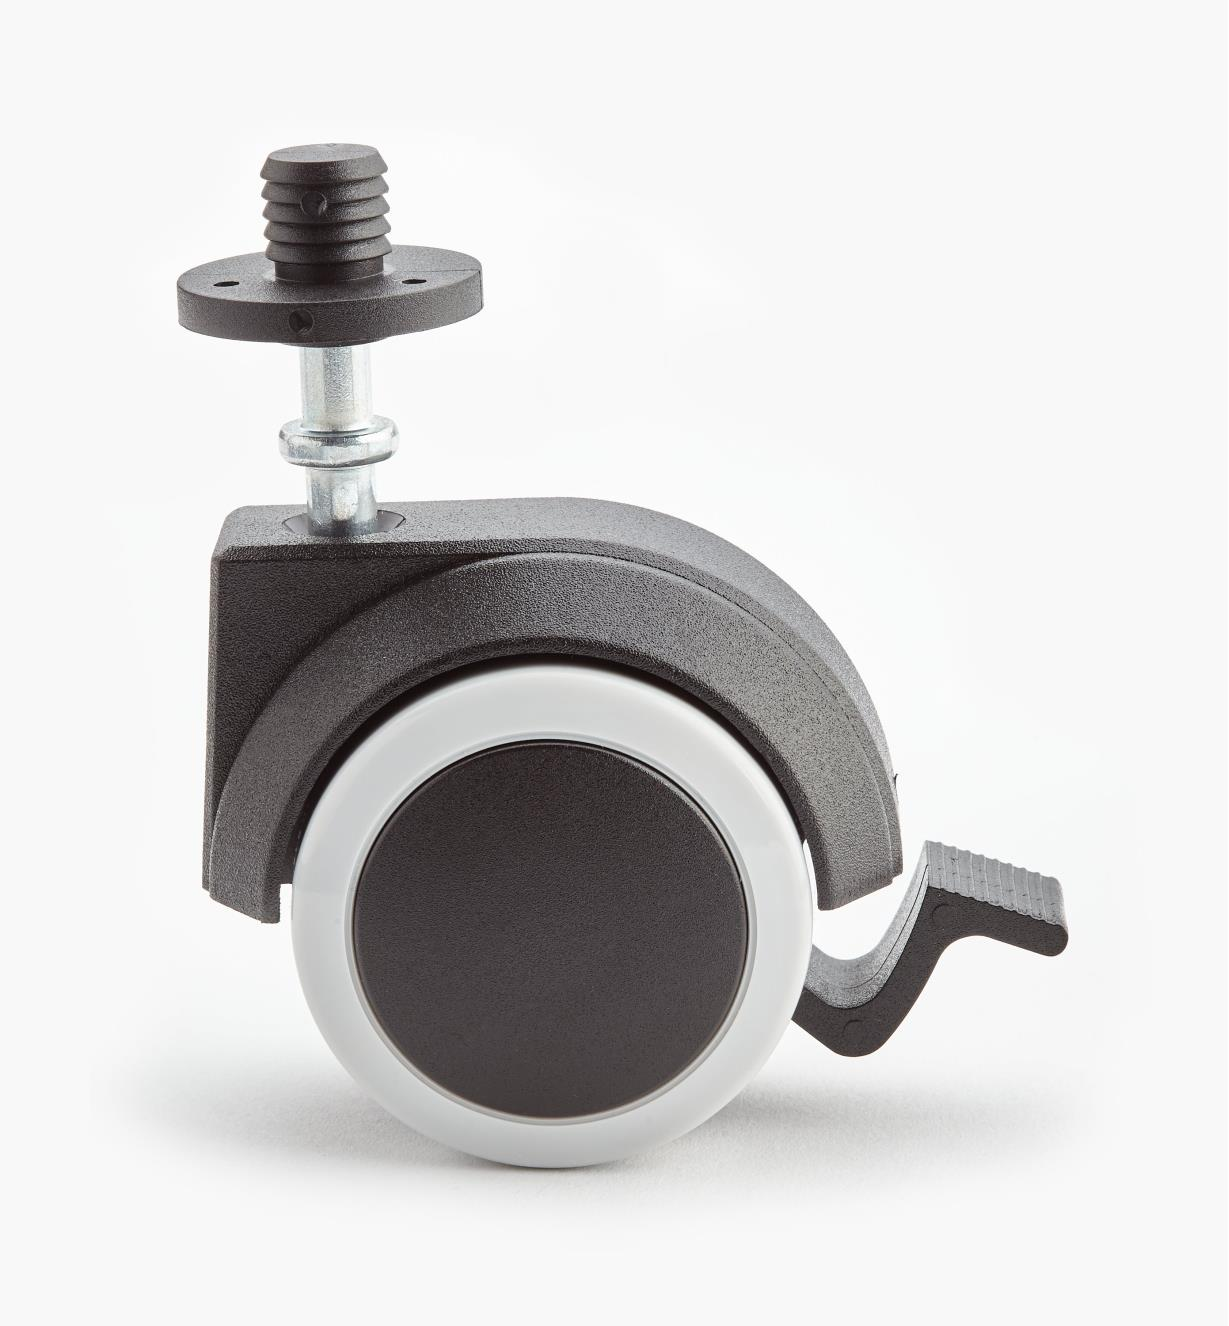 00K2741 - Stem-Mount Caster (with brake), each